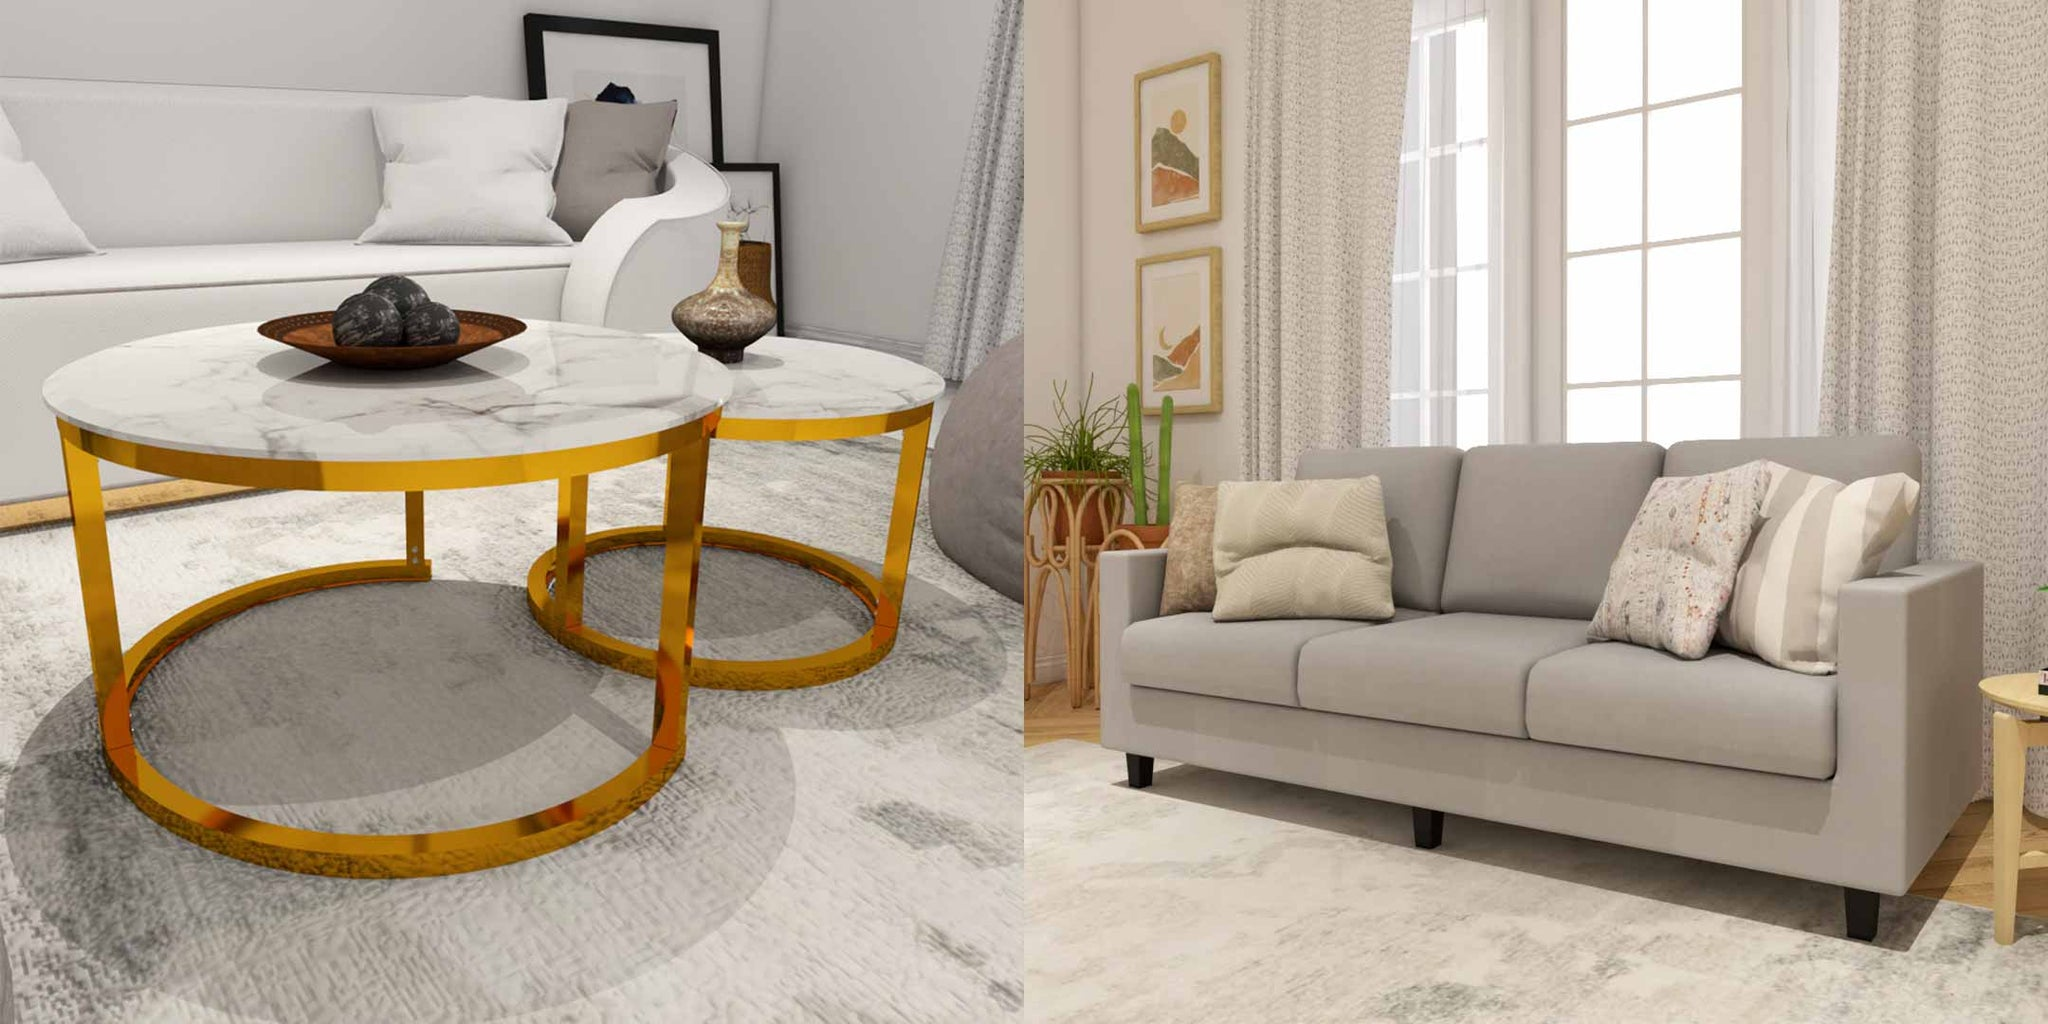 Common Mistakes You Must Avoid When Shopping For Furniture - Sacrificing Quality for Price and Beauty